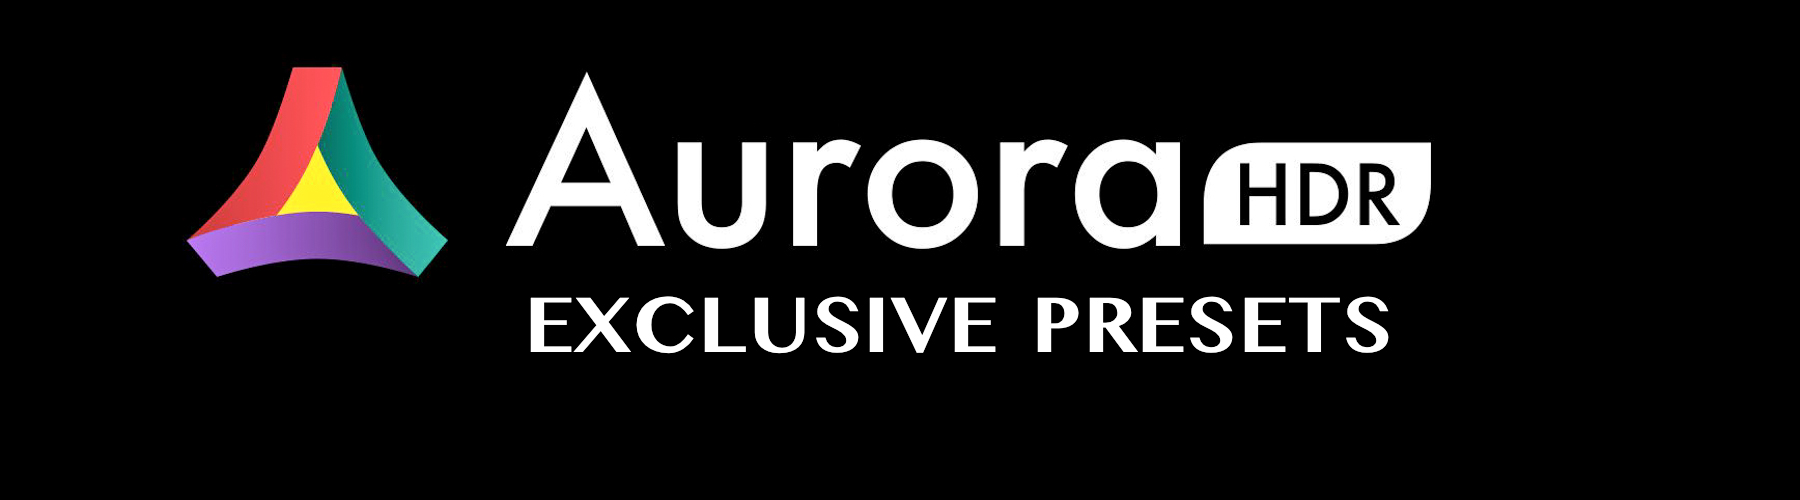 PREMIUM and FREE Aurora HDR Presets from PixaFOTO.com